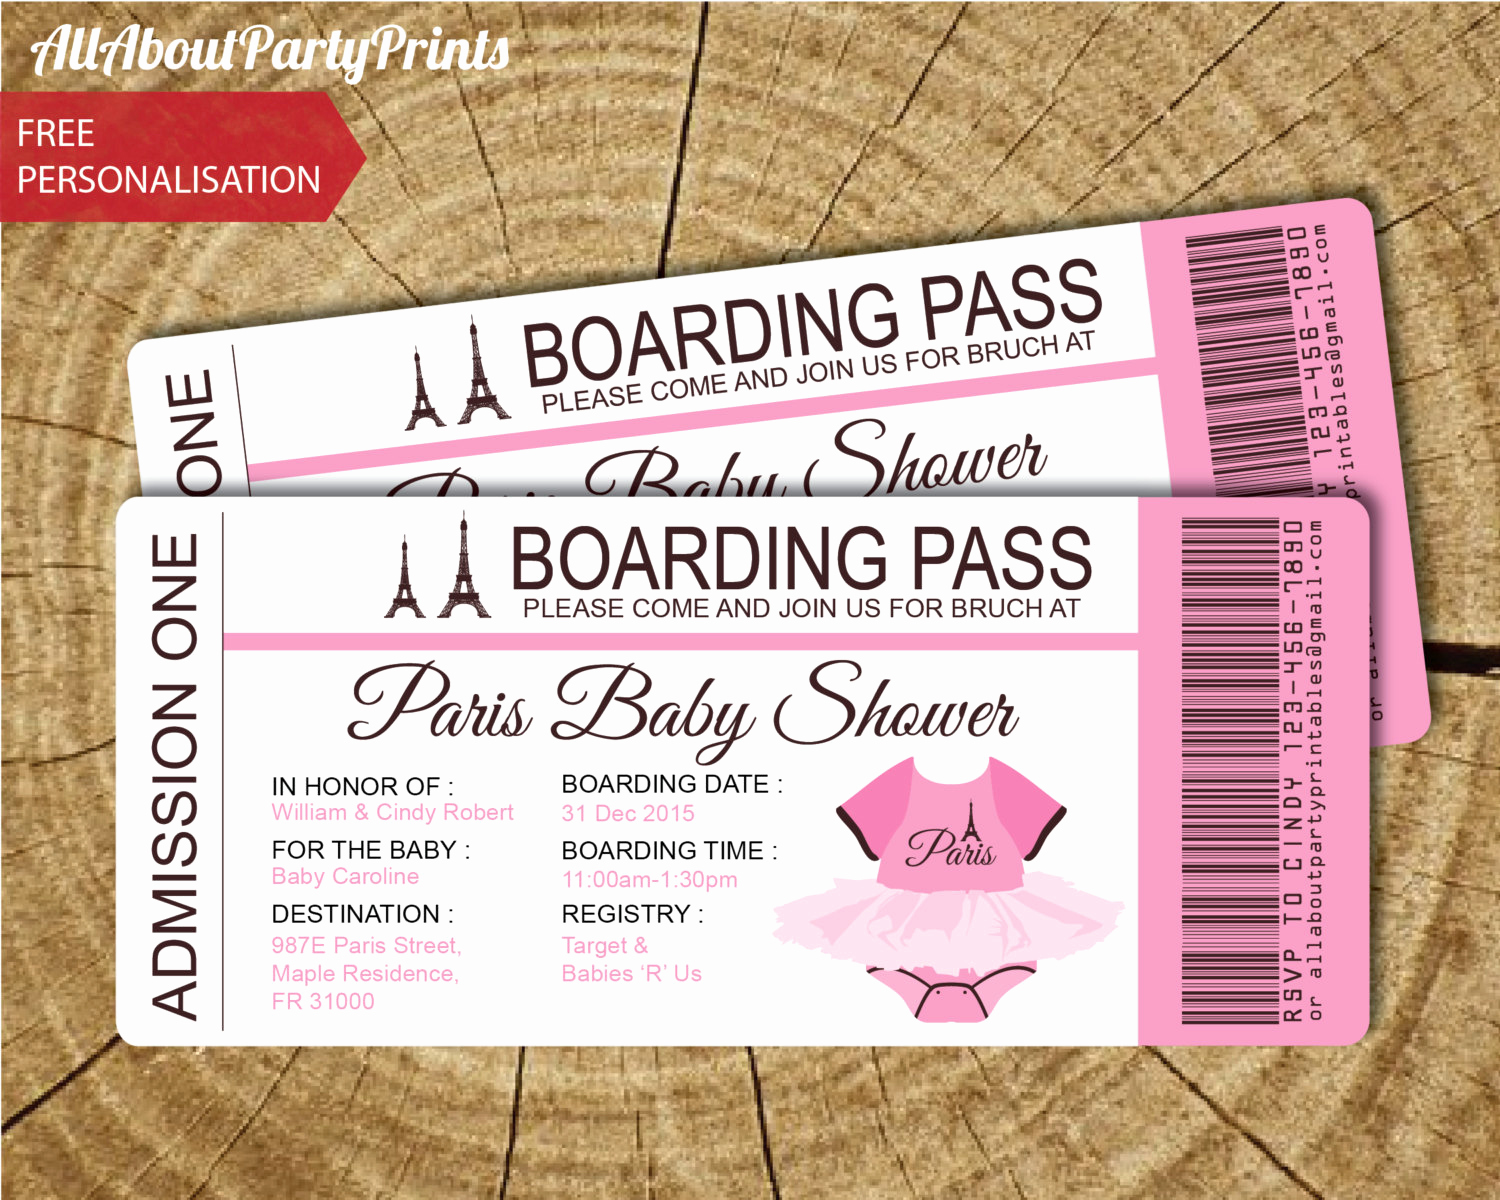 Paris Boarding Pass Invitation Lovely Paris Baby Shower Passport and Boarding Pass